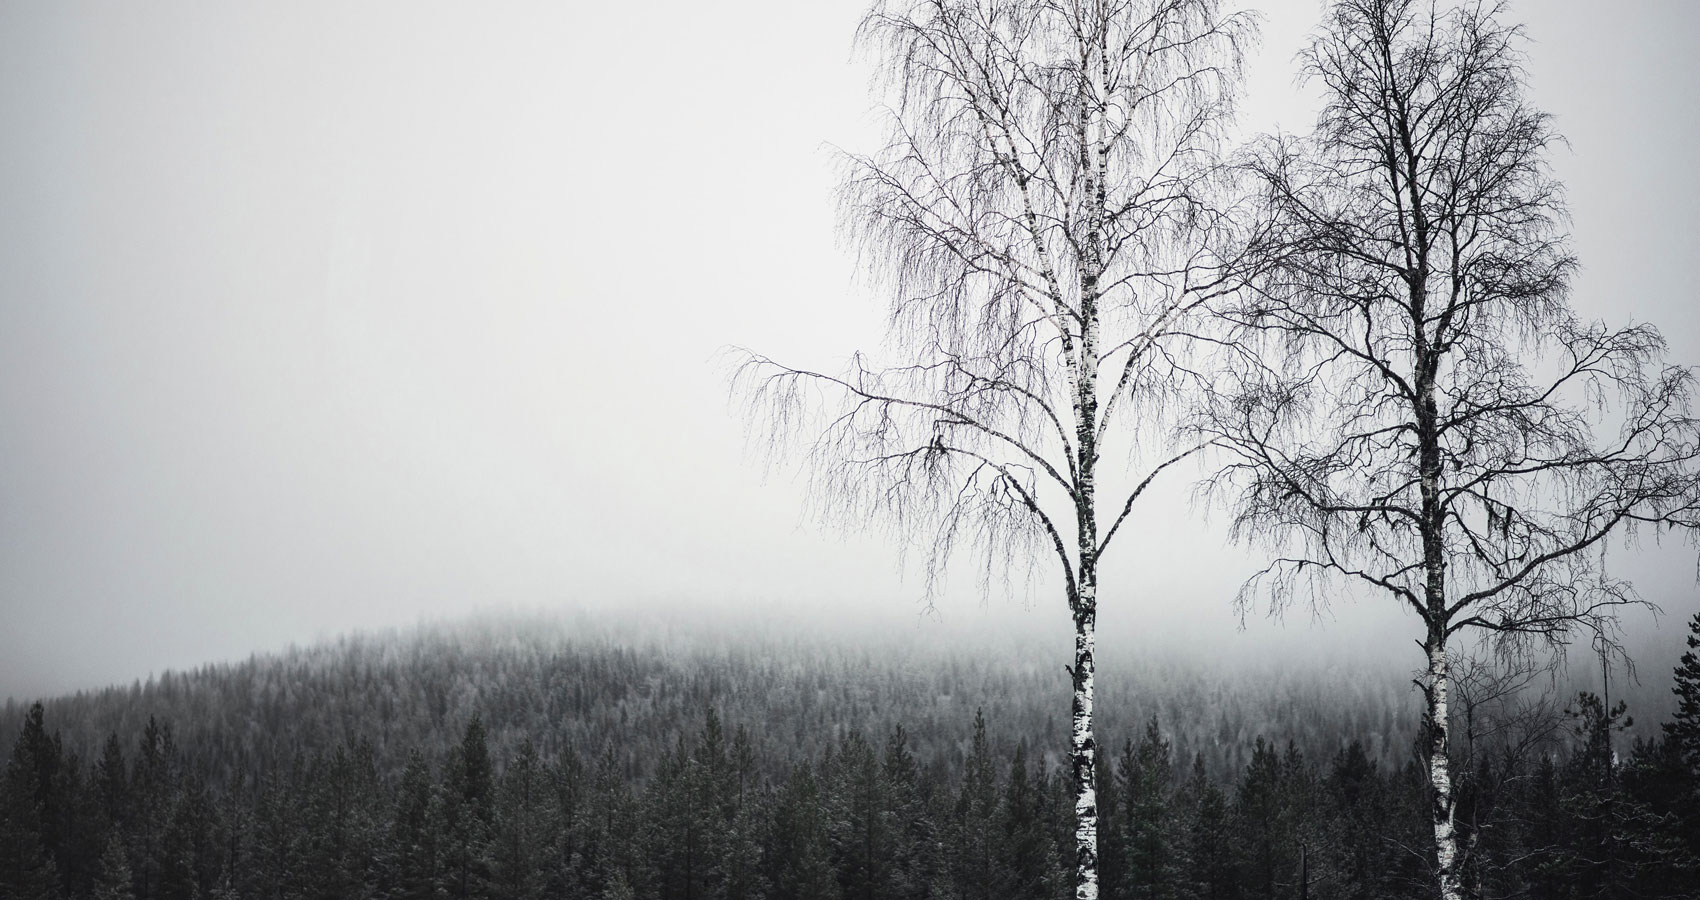 Birches, a poem written by Robert Frost at Spillwords.com